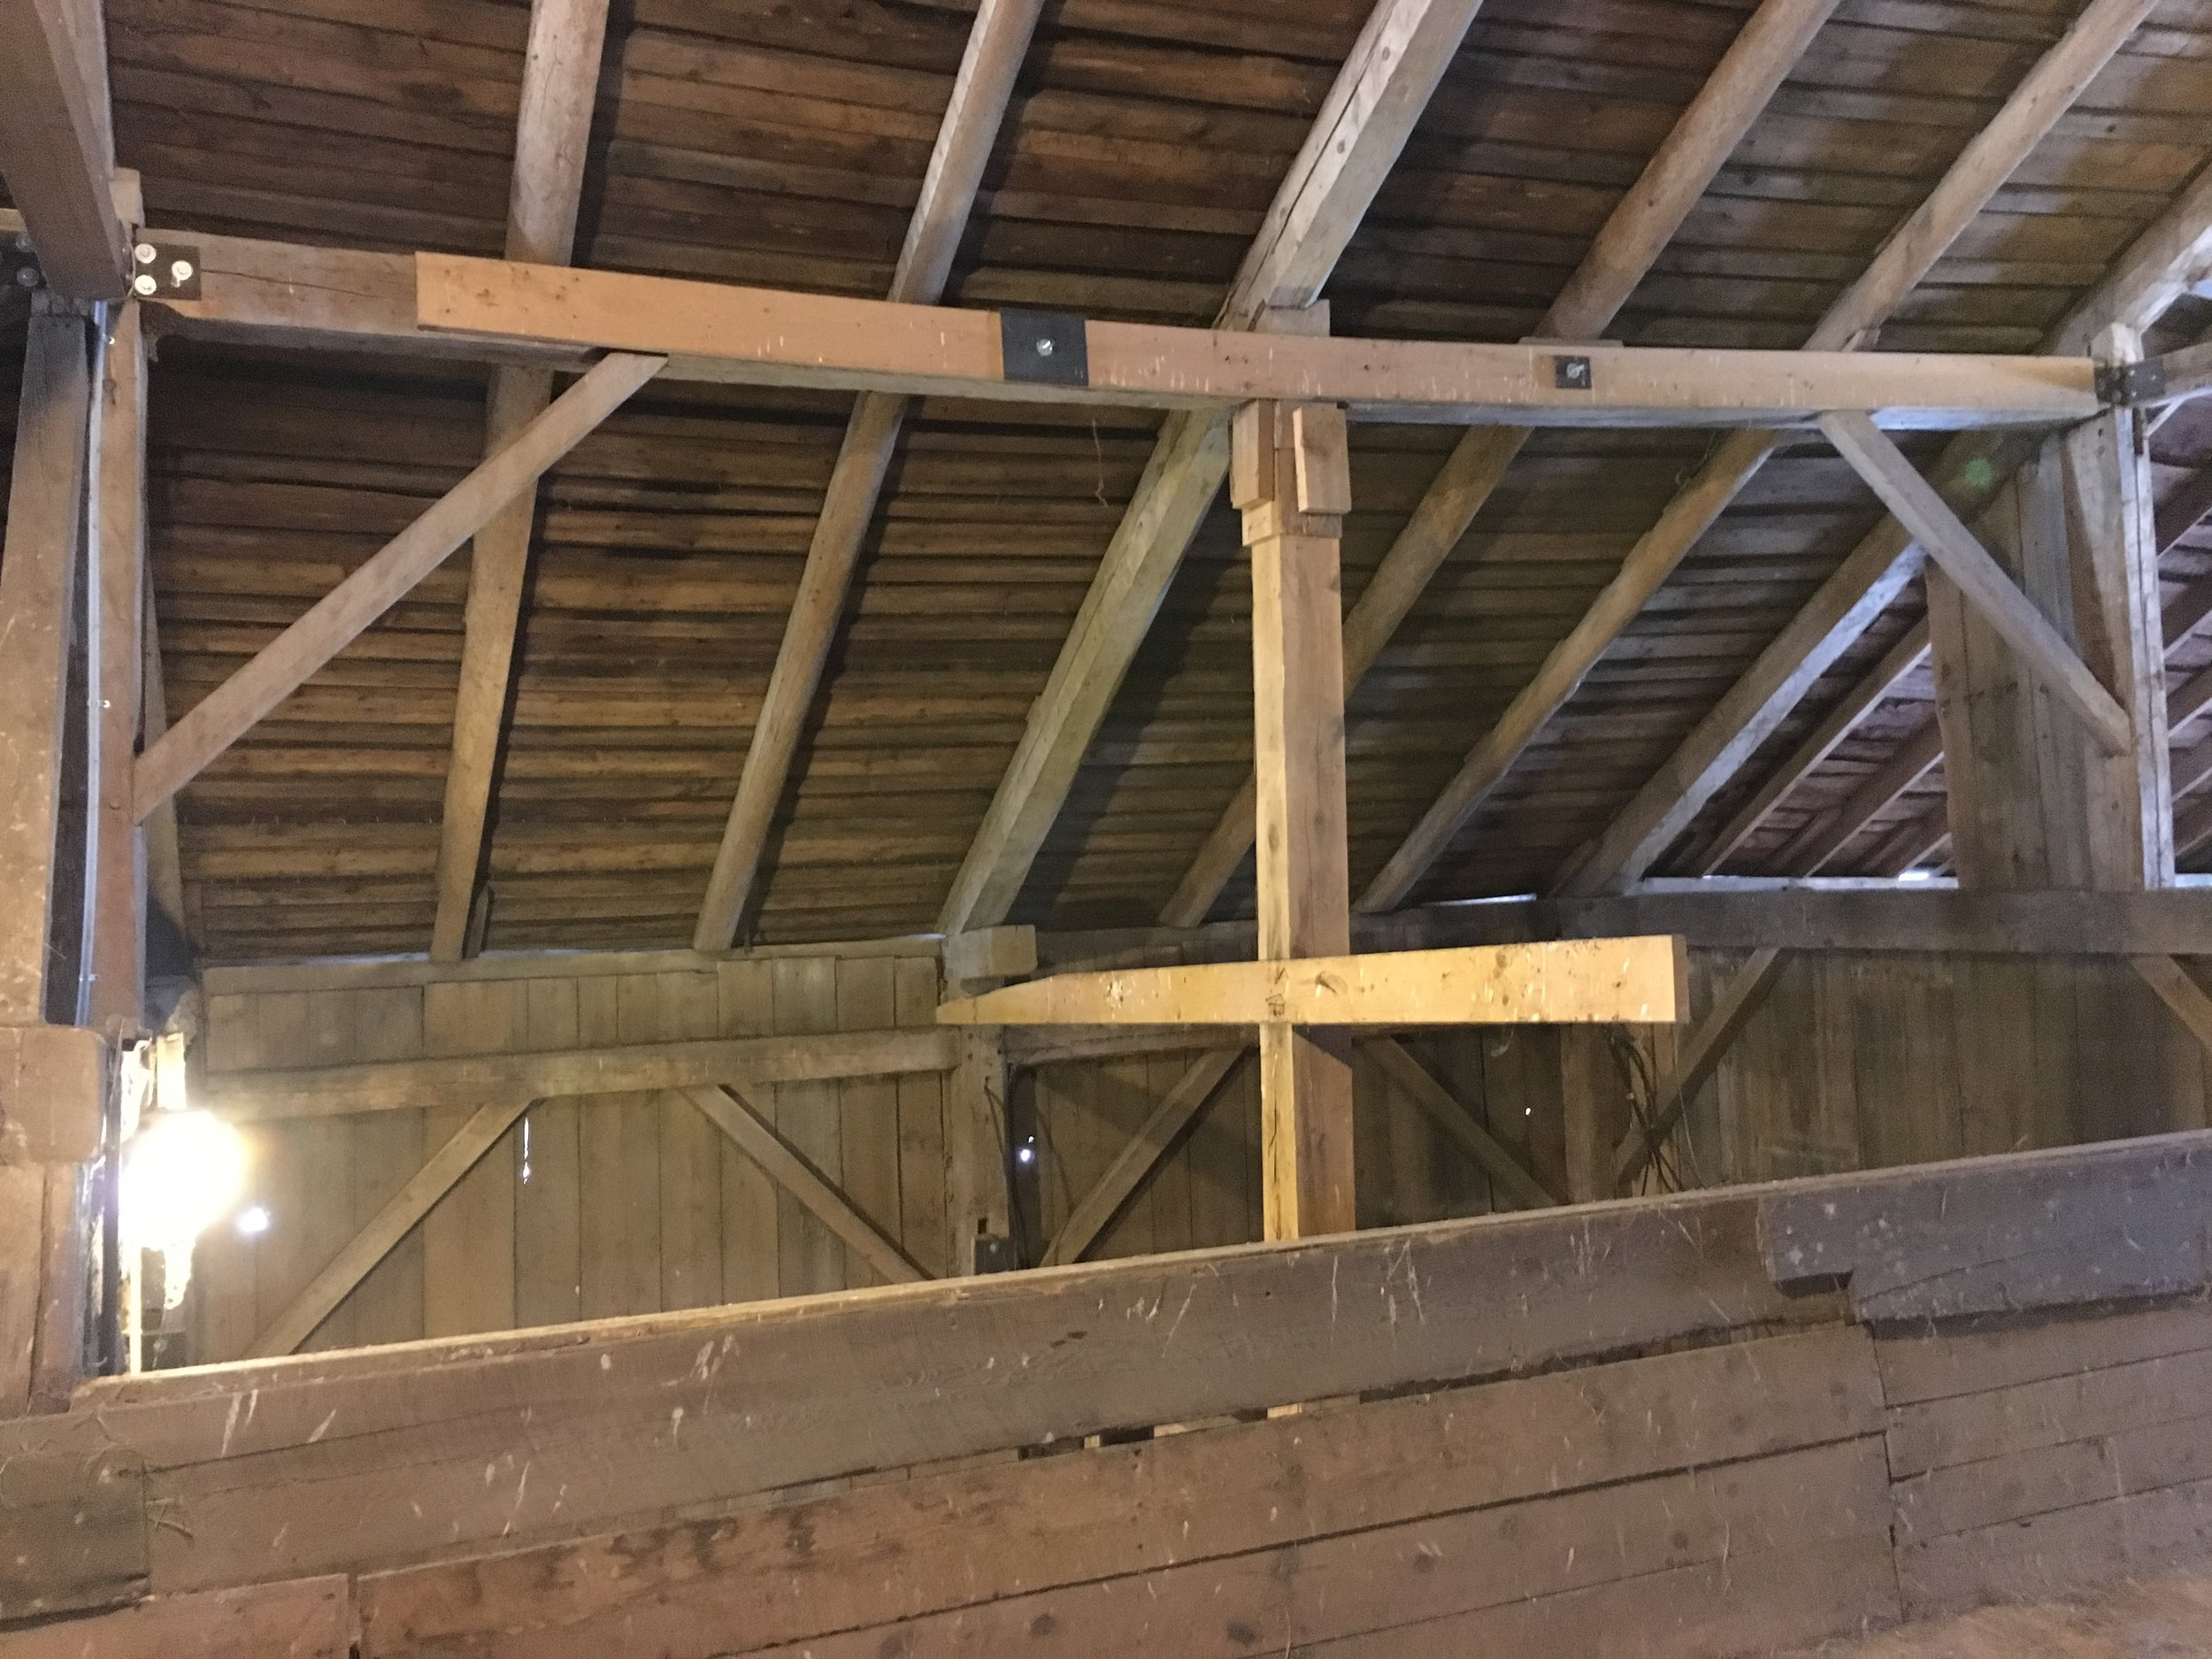 Another bent prior to repair, showing a post with no joinery into the principal rafter, and the wall tied to the post by a shattered remnant of modern dimensional 2x lumber,.